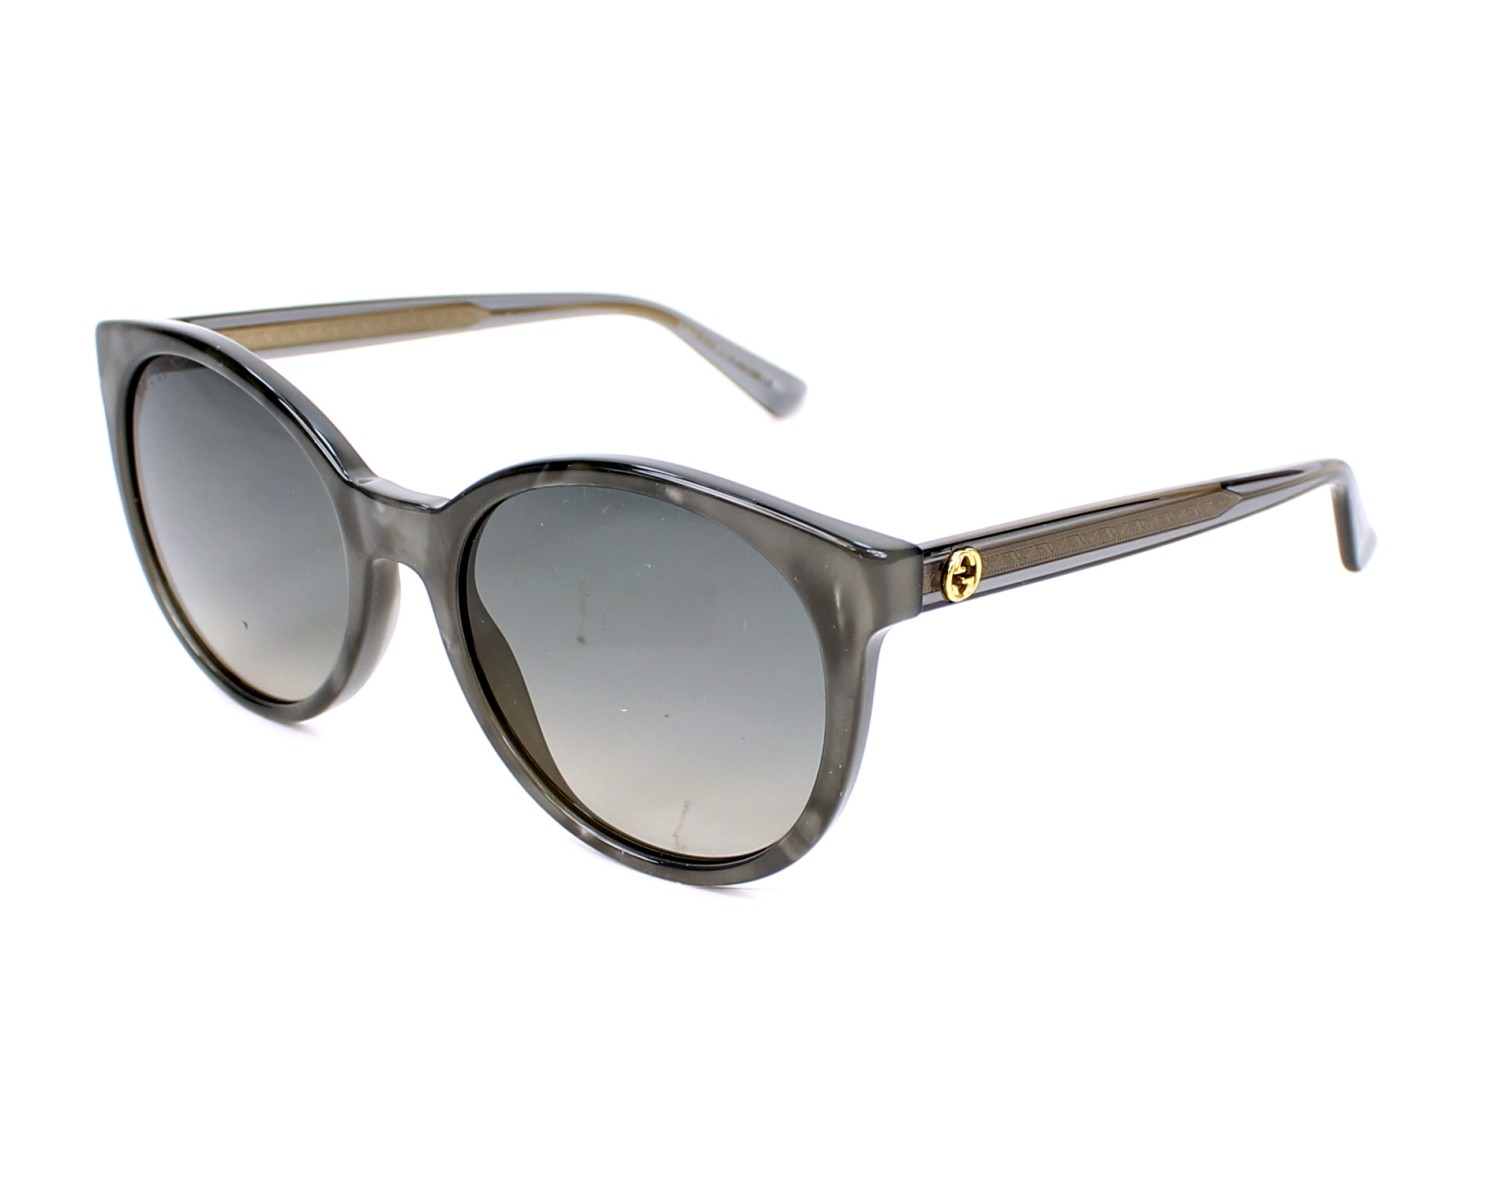 a12e9f0a7e0b Sunglasses Gucci GG-3820-S R4I DX 54-19 Grey profile view